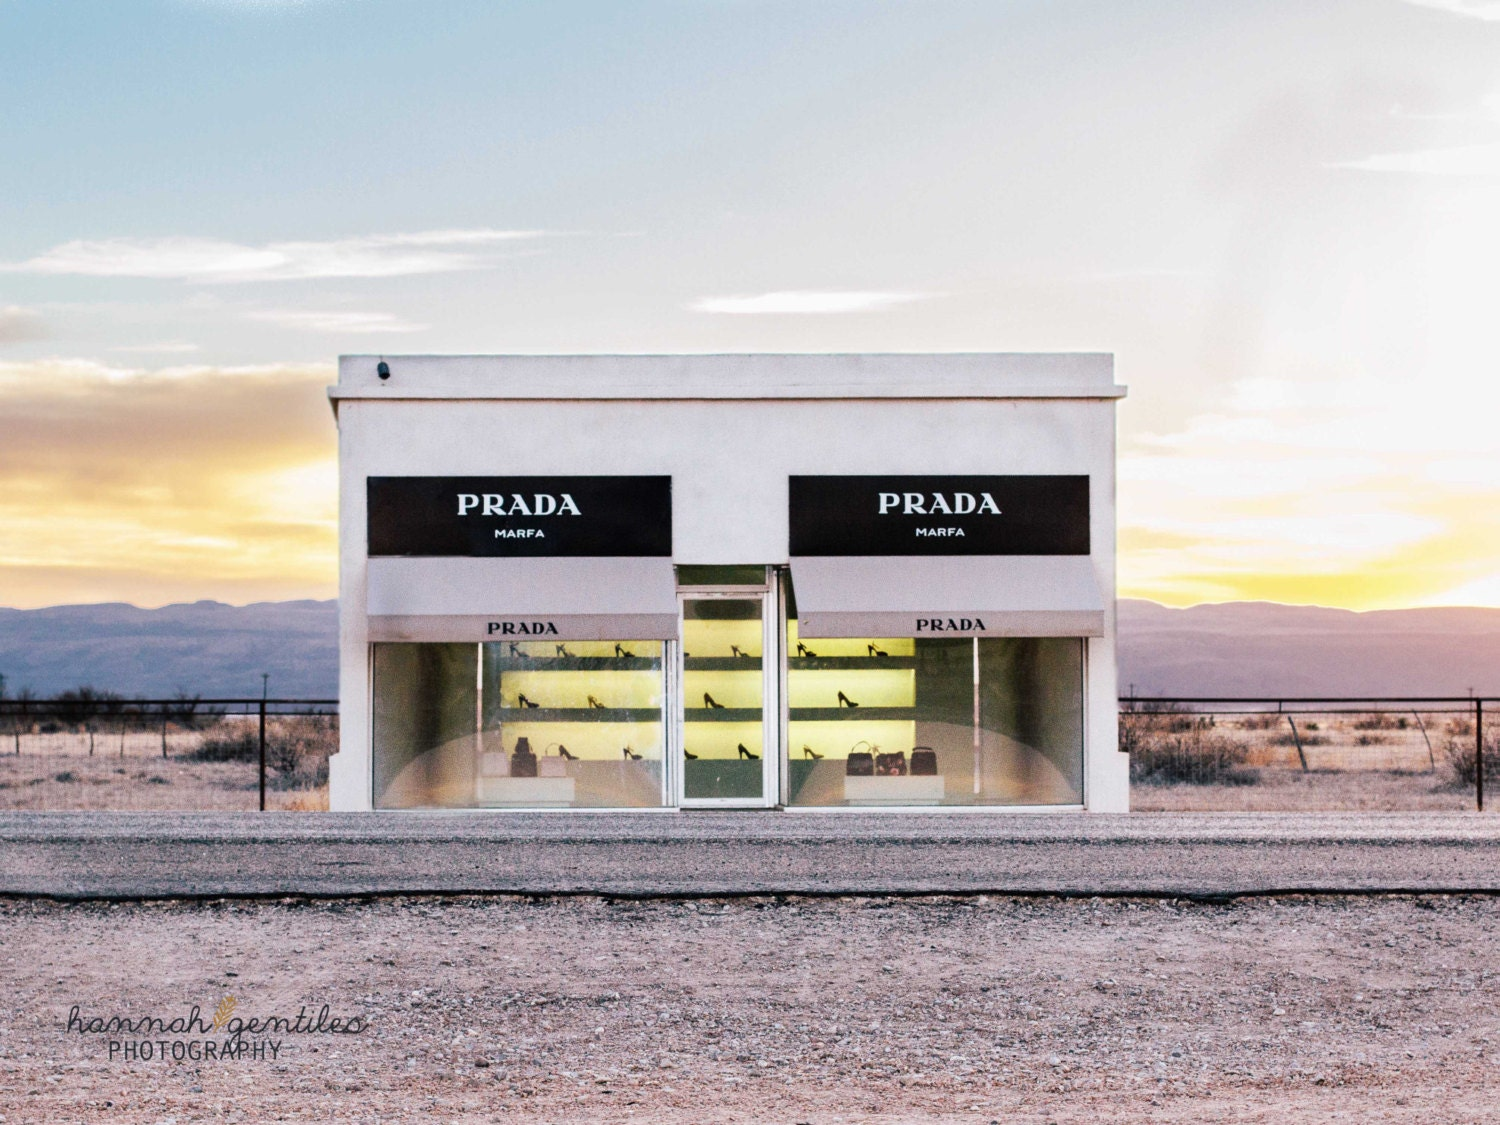 prada marfa photo print by observationfullnfelt on etsy. Black Bedroom Furniture Sets. Home Design Ideas